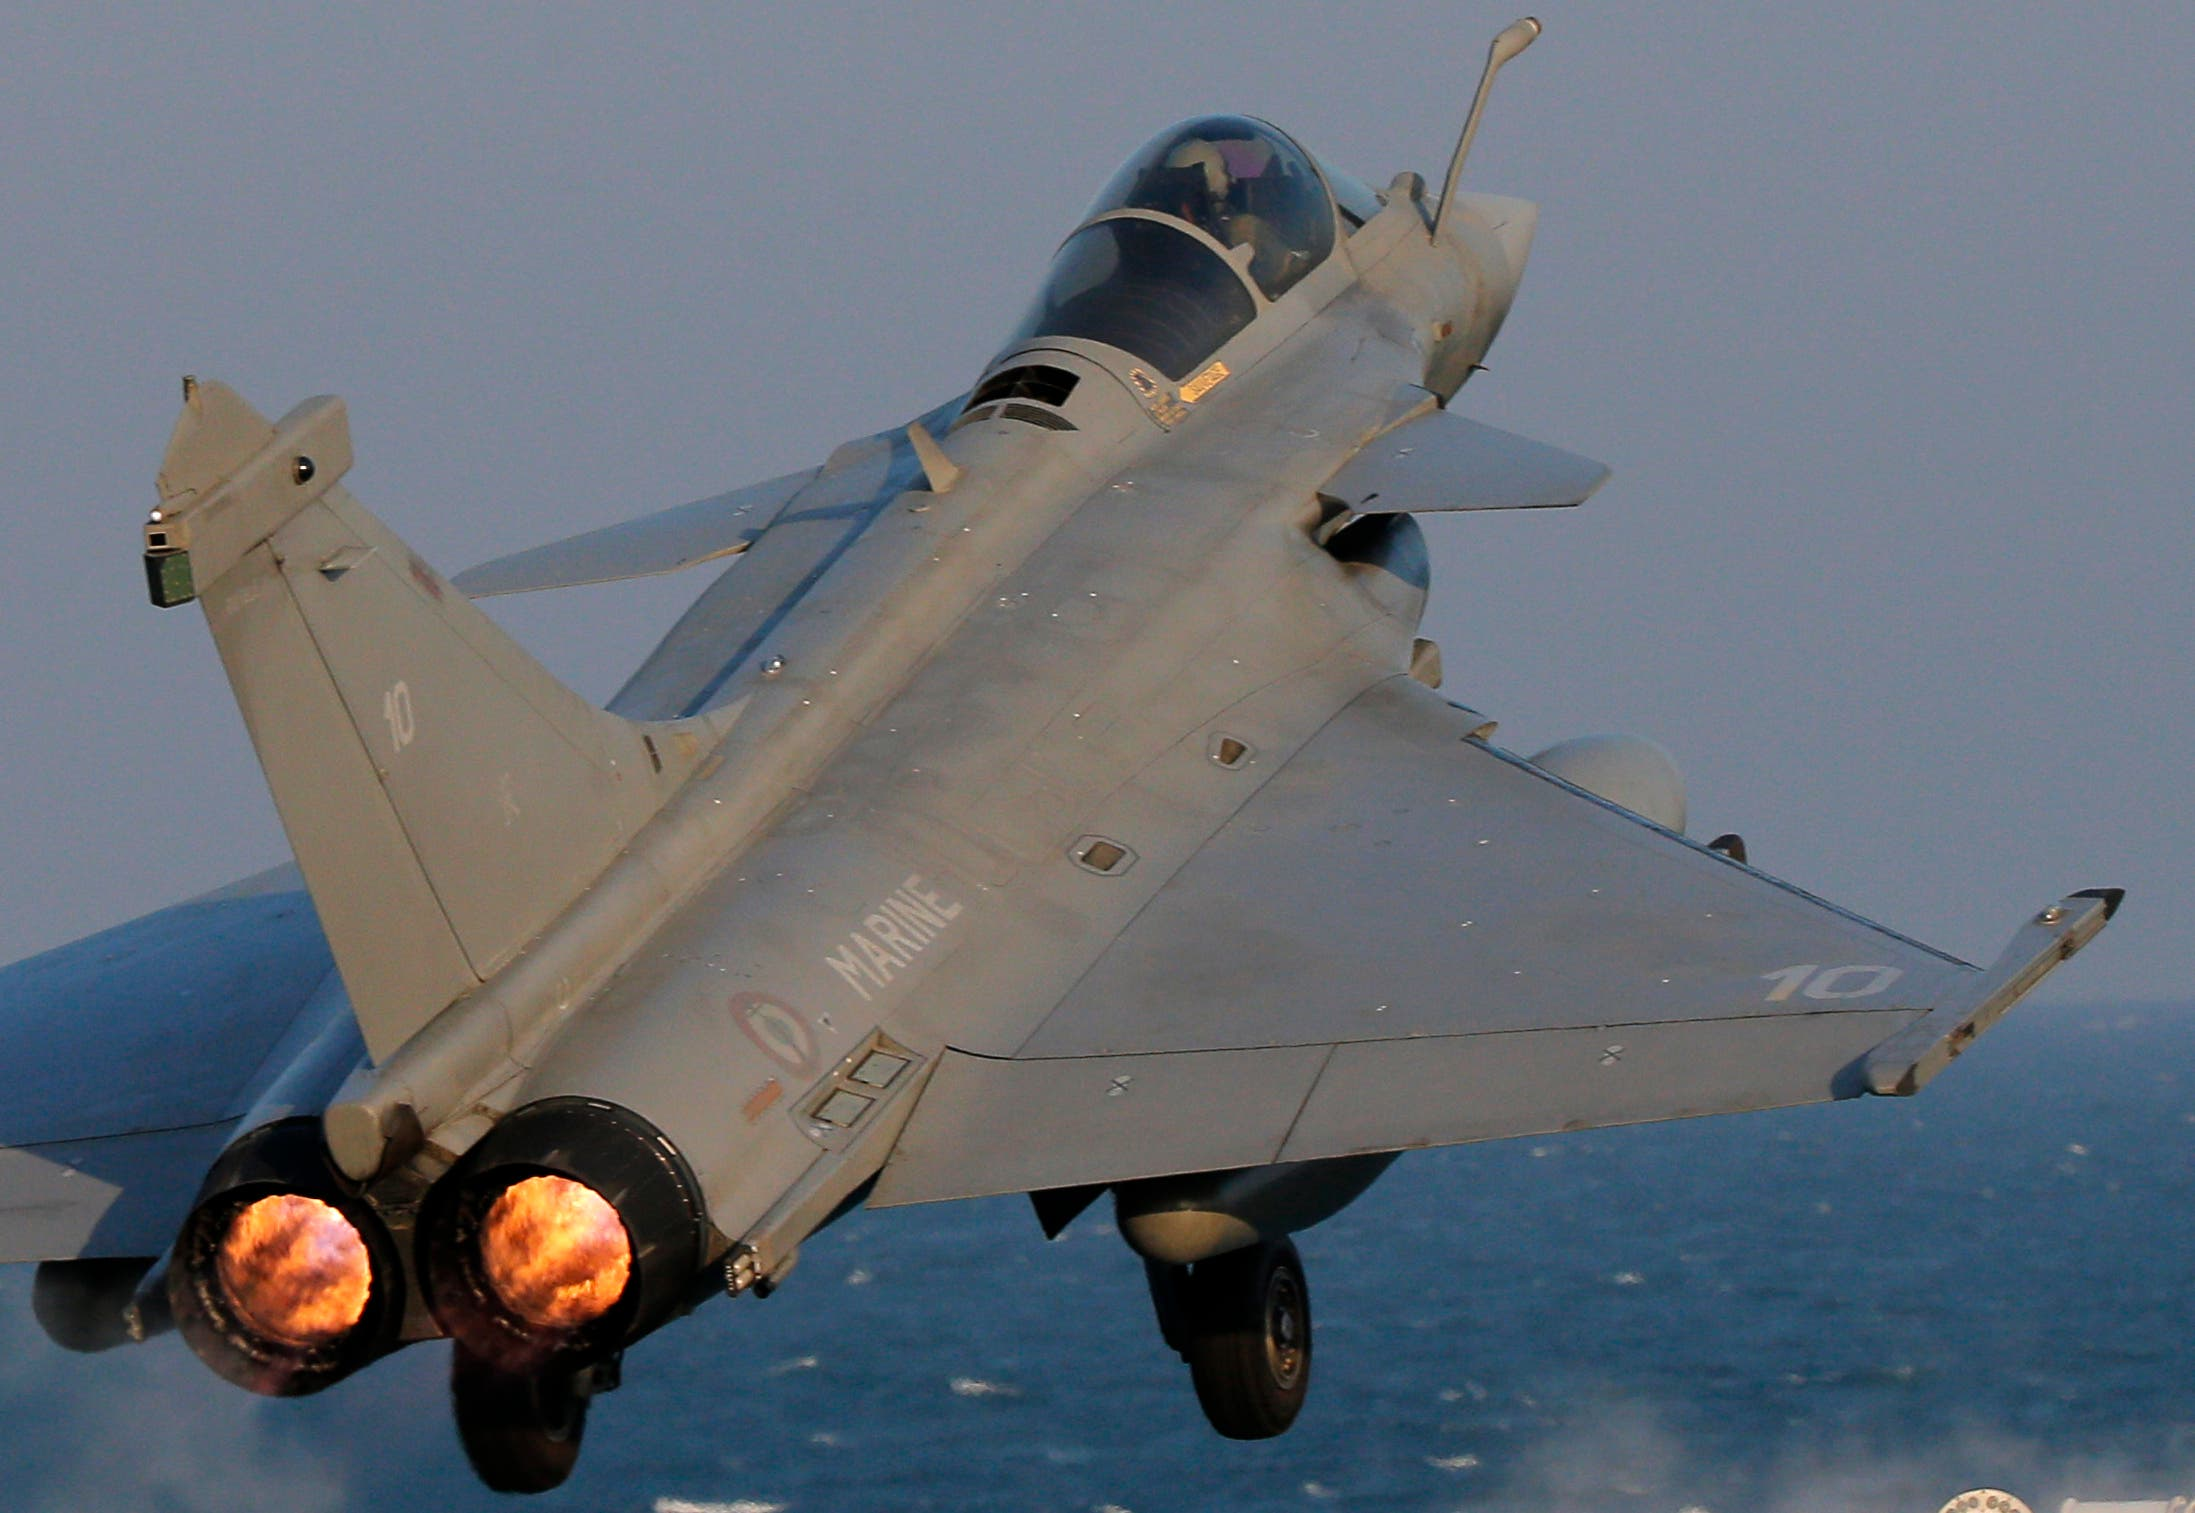 A Rafale fighter jet is catapulted for a mission, on France's flagship Charles de Gaulle aircraft carrier in the Persian Gulf, Wednesday, Jan. 13, 2016. The Charles de Gaulle joined the U.S.- led coalition against Islamic State group in November, as France intensified its airstrikes against extremist sites in Syria and Iraq in response to Islamic State group threats against French targets. (AP Photo/Christophe Ena)